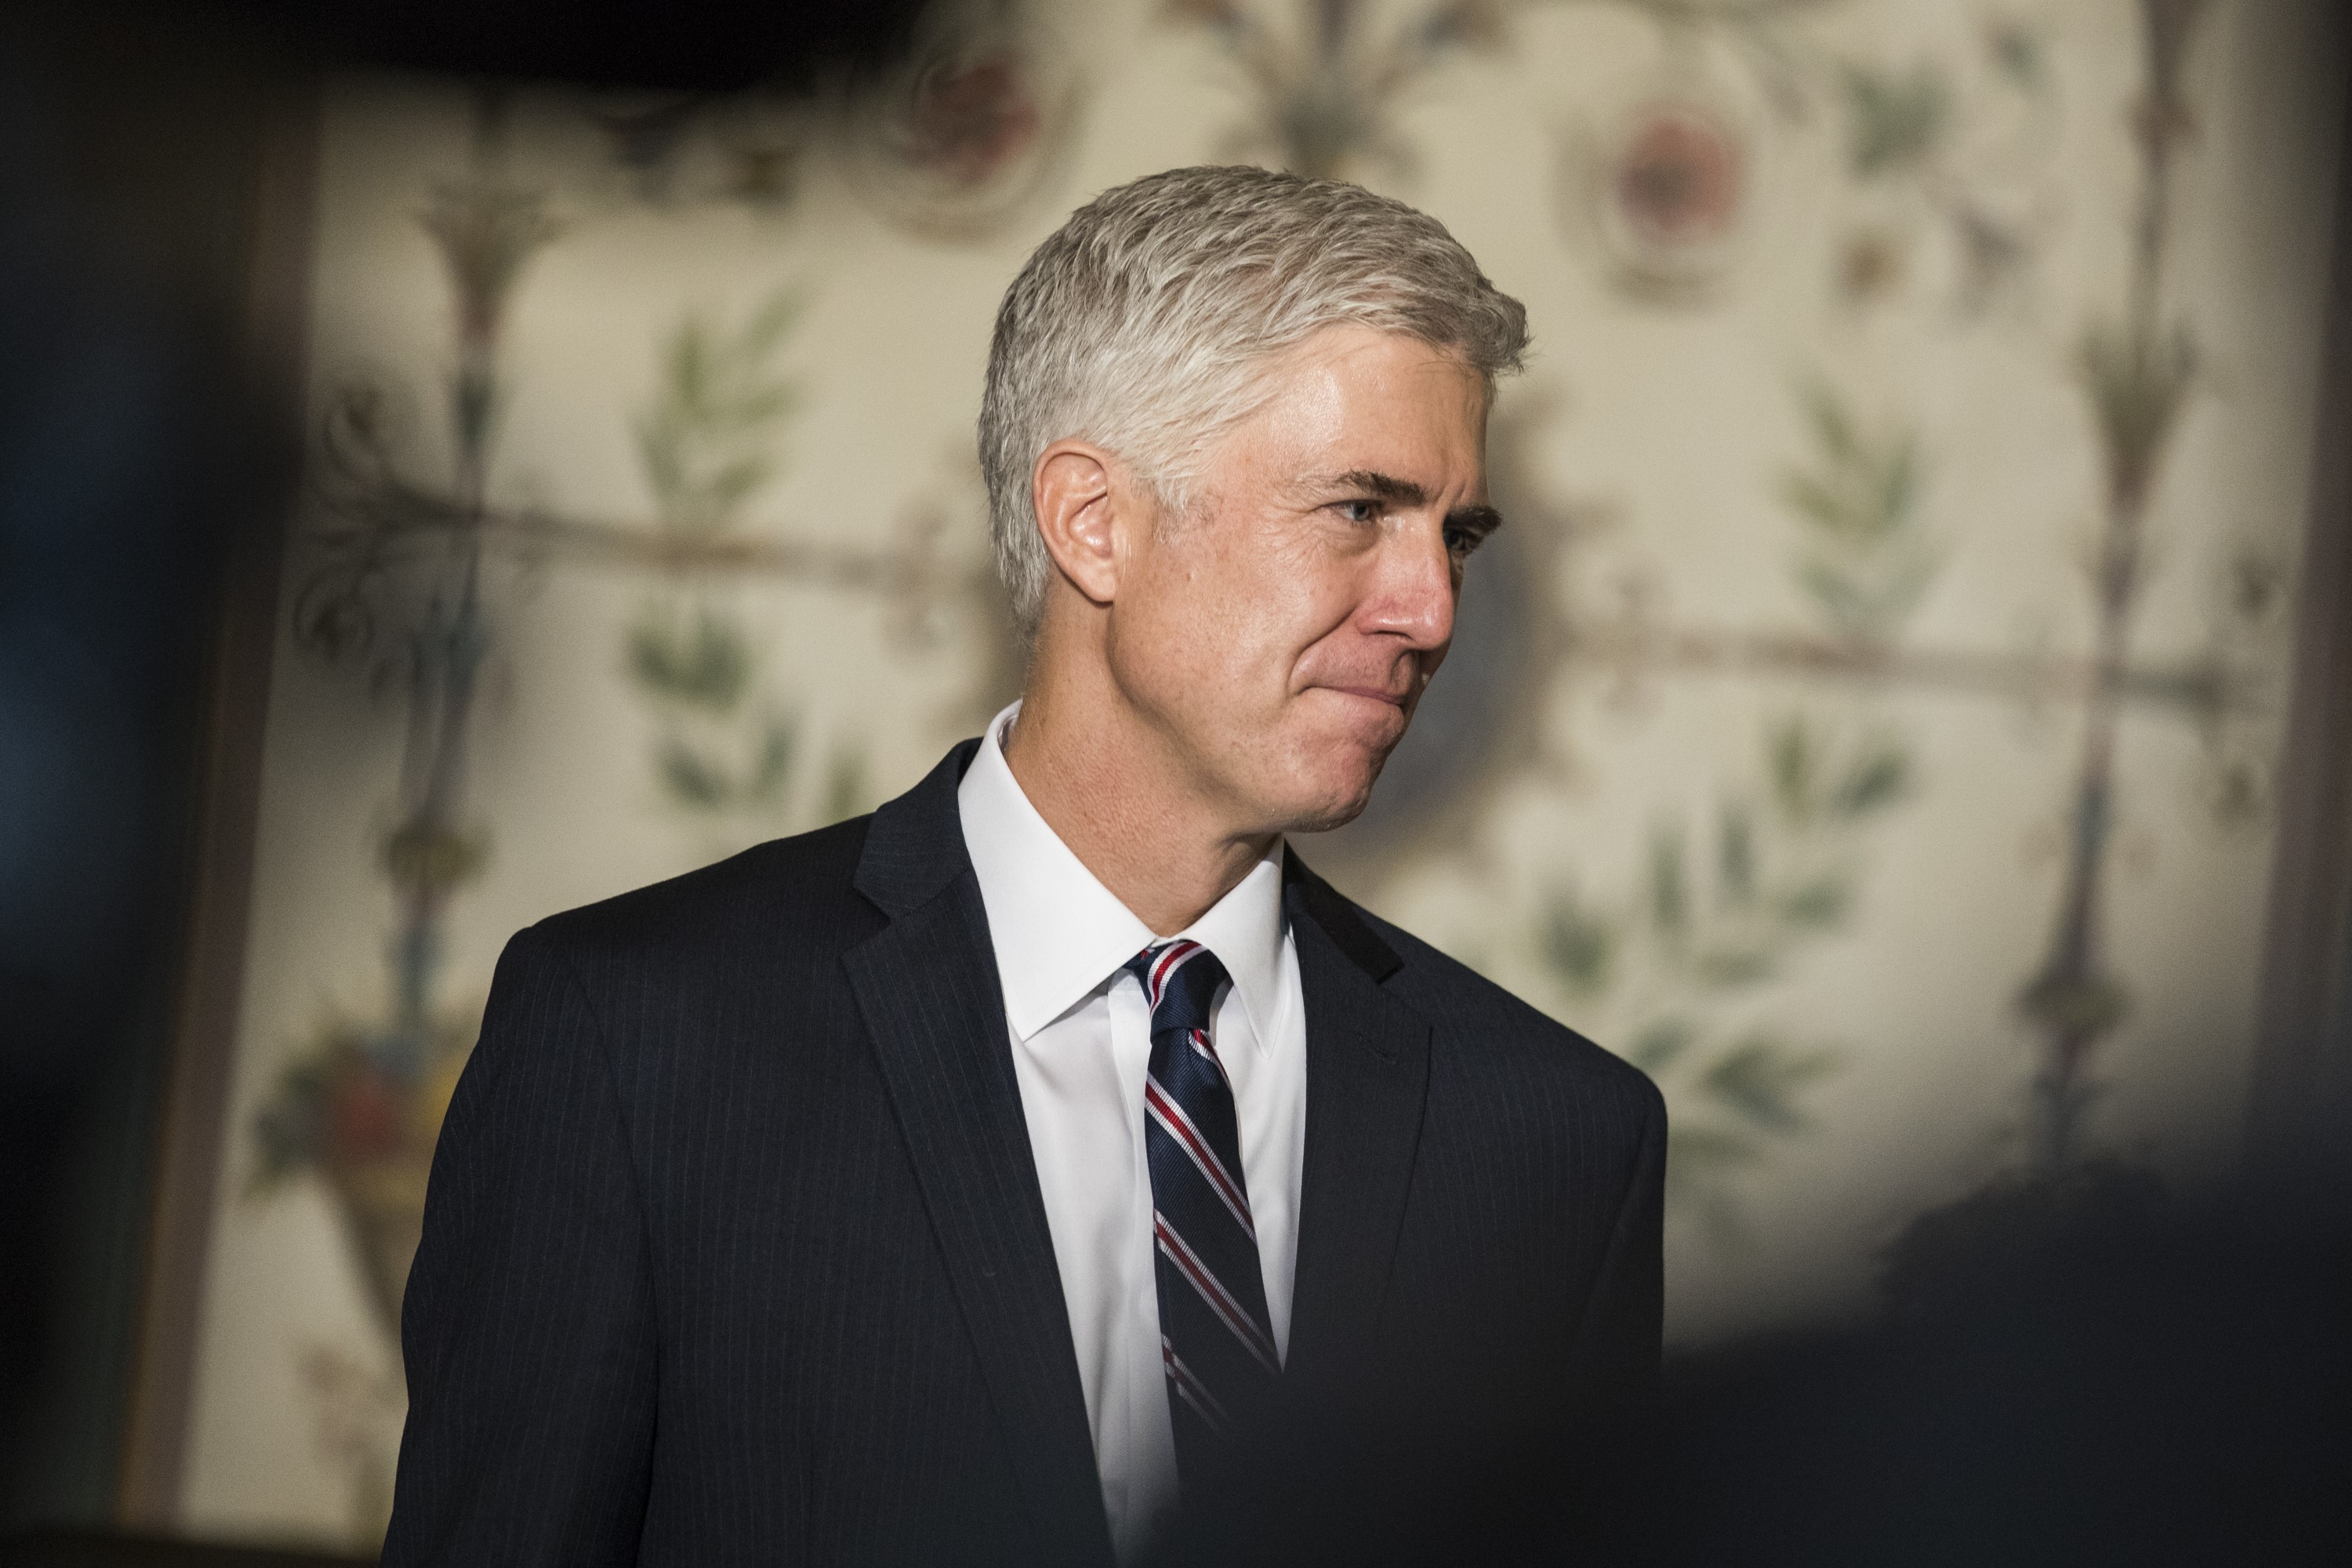 Judge Neil Gorsuch, President Donald Trump's nominee for the U.S. Supreme Court, meets with lawmakers at the U.S. Capitol in Washington, D.C., on Feb. 1, 2017.